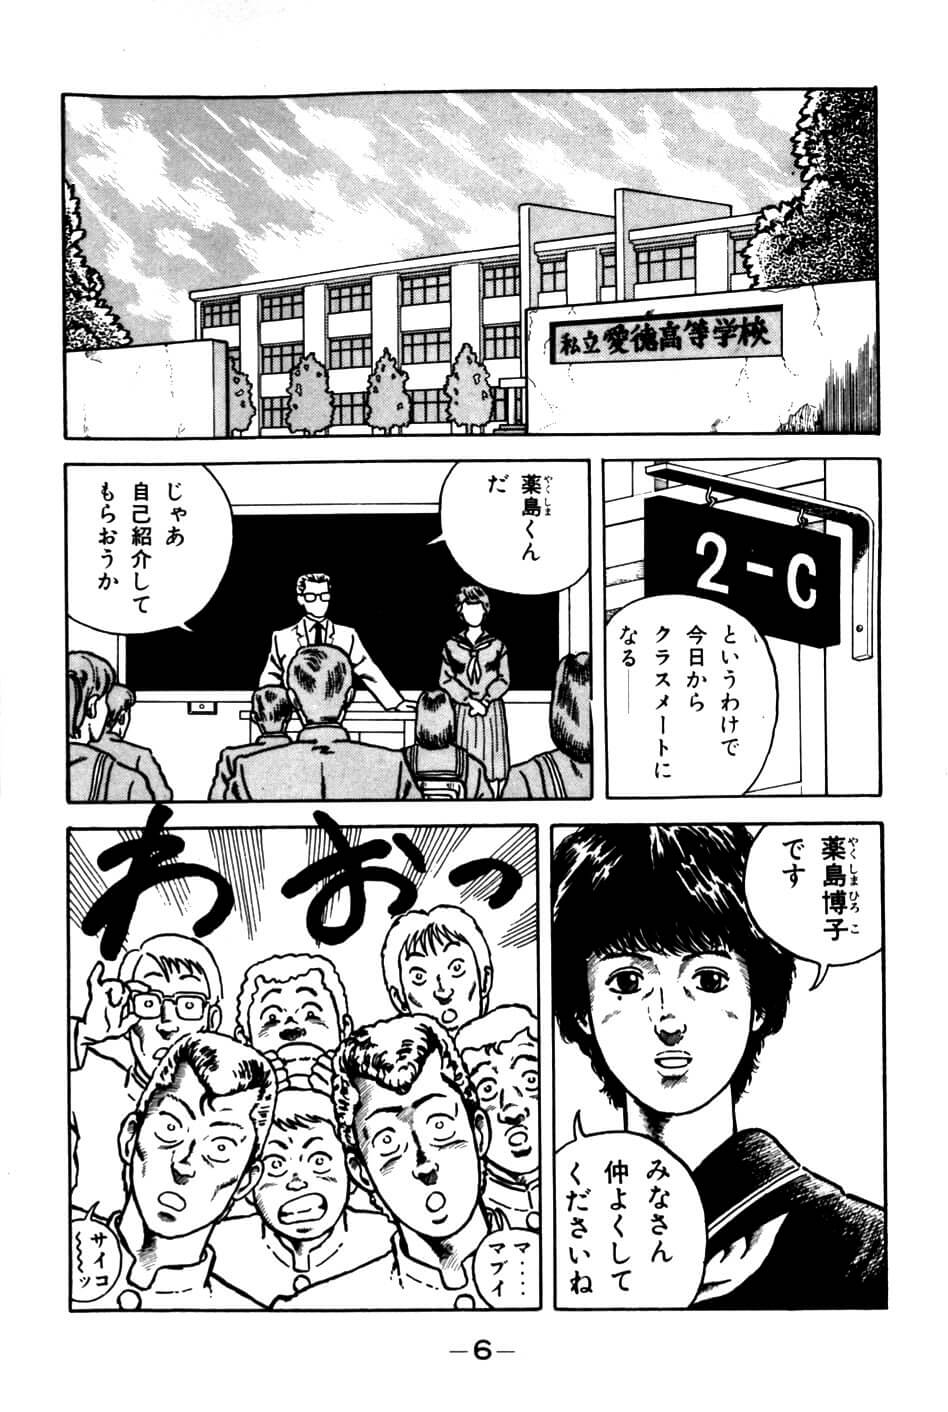 Be Bop High School Extraits 02